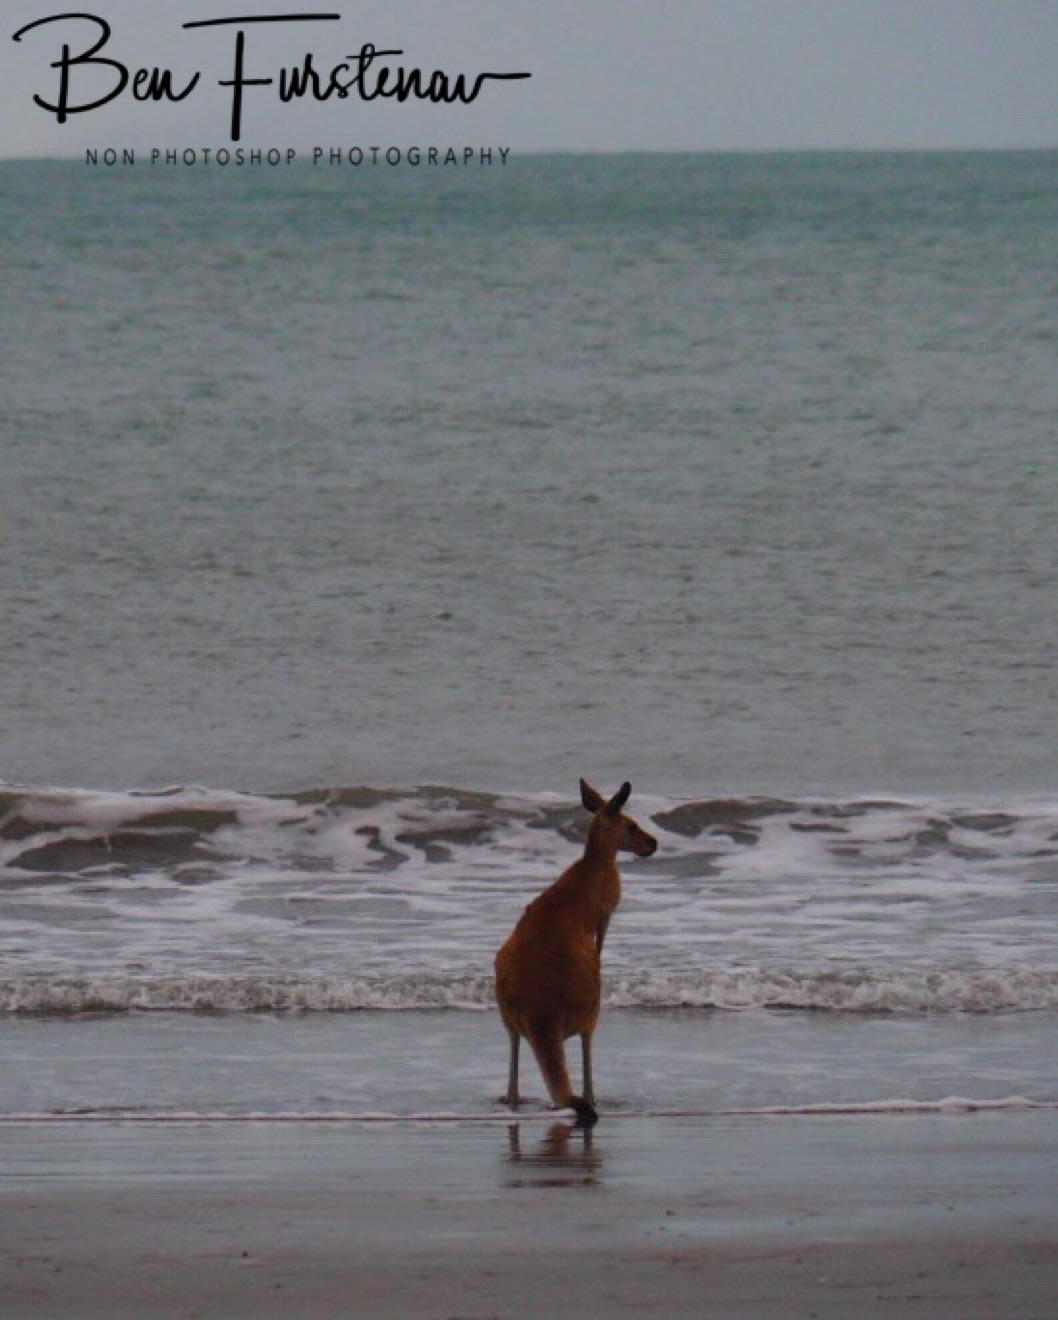 Skippy by the ocean at Cape Hillsborough, Queensland, Australia